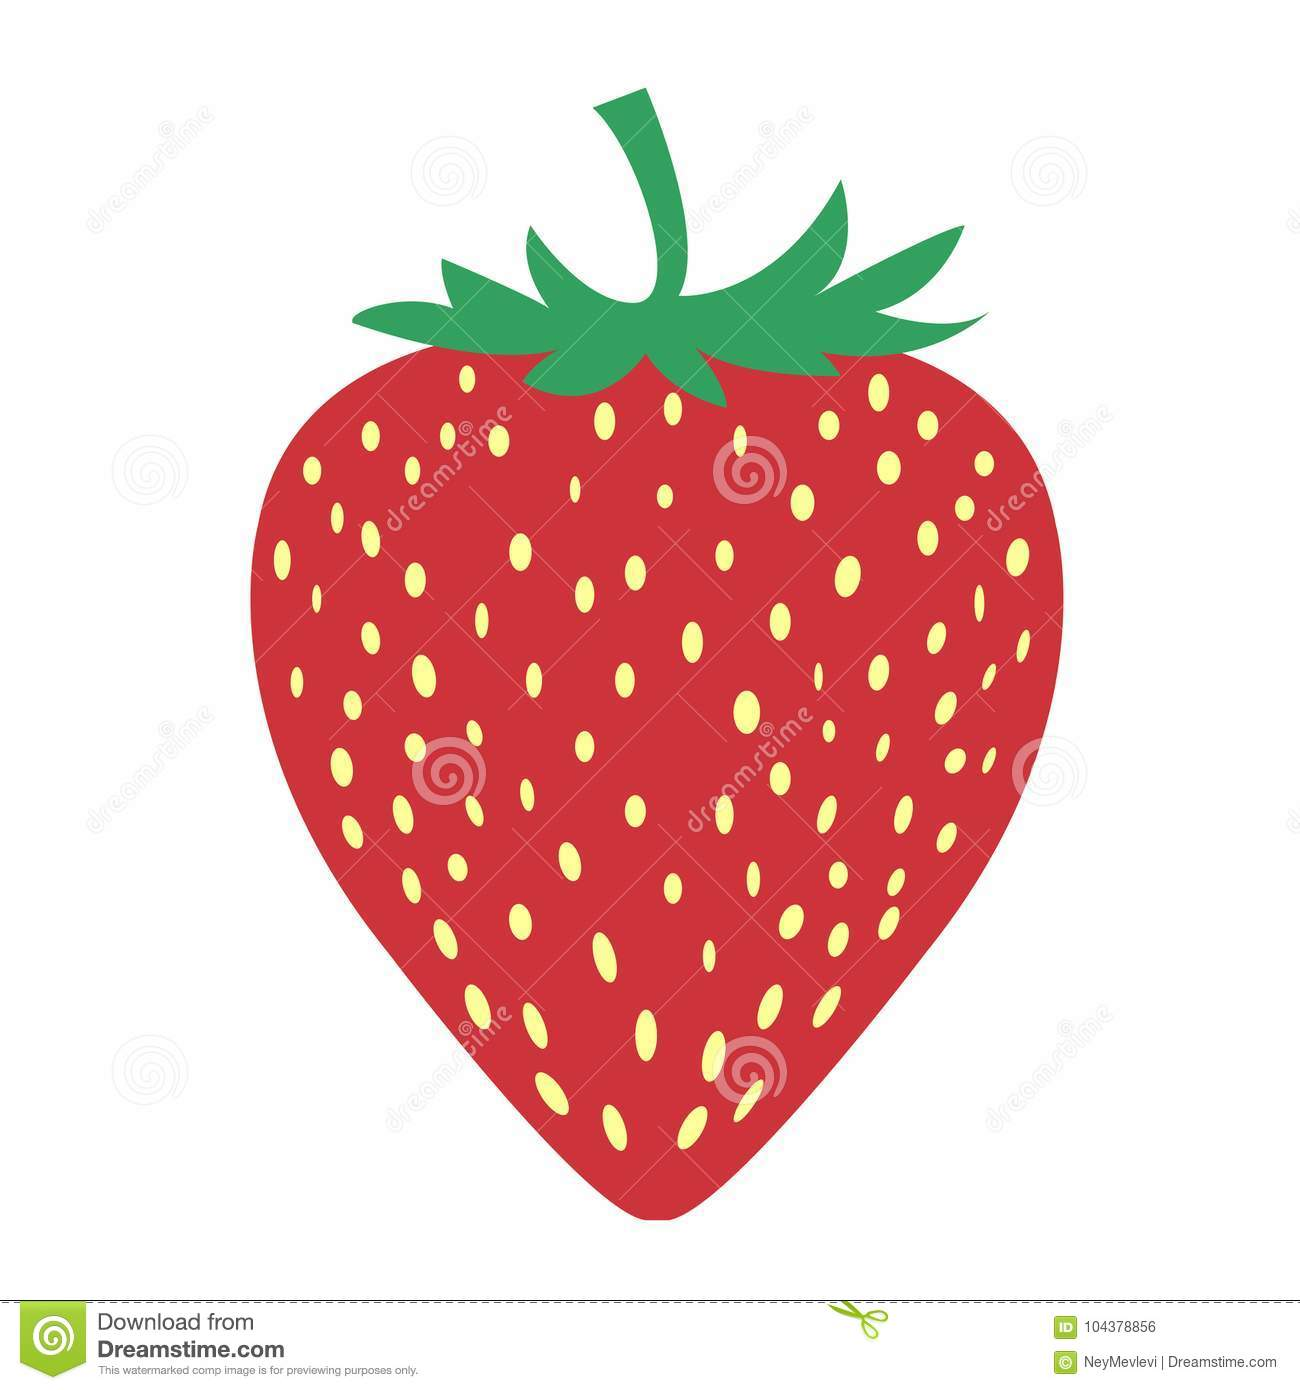 The picture of strawberry fruit is very simple